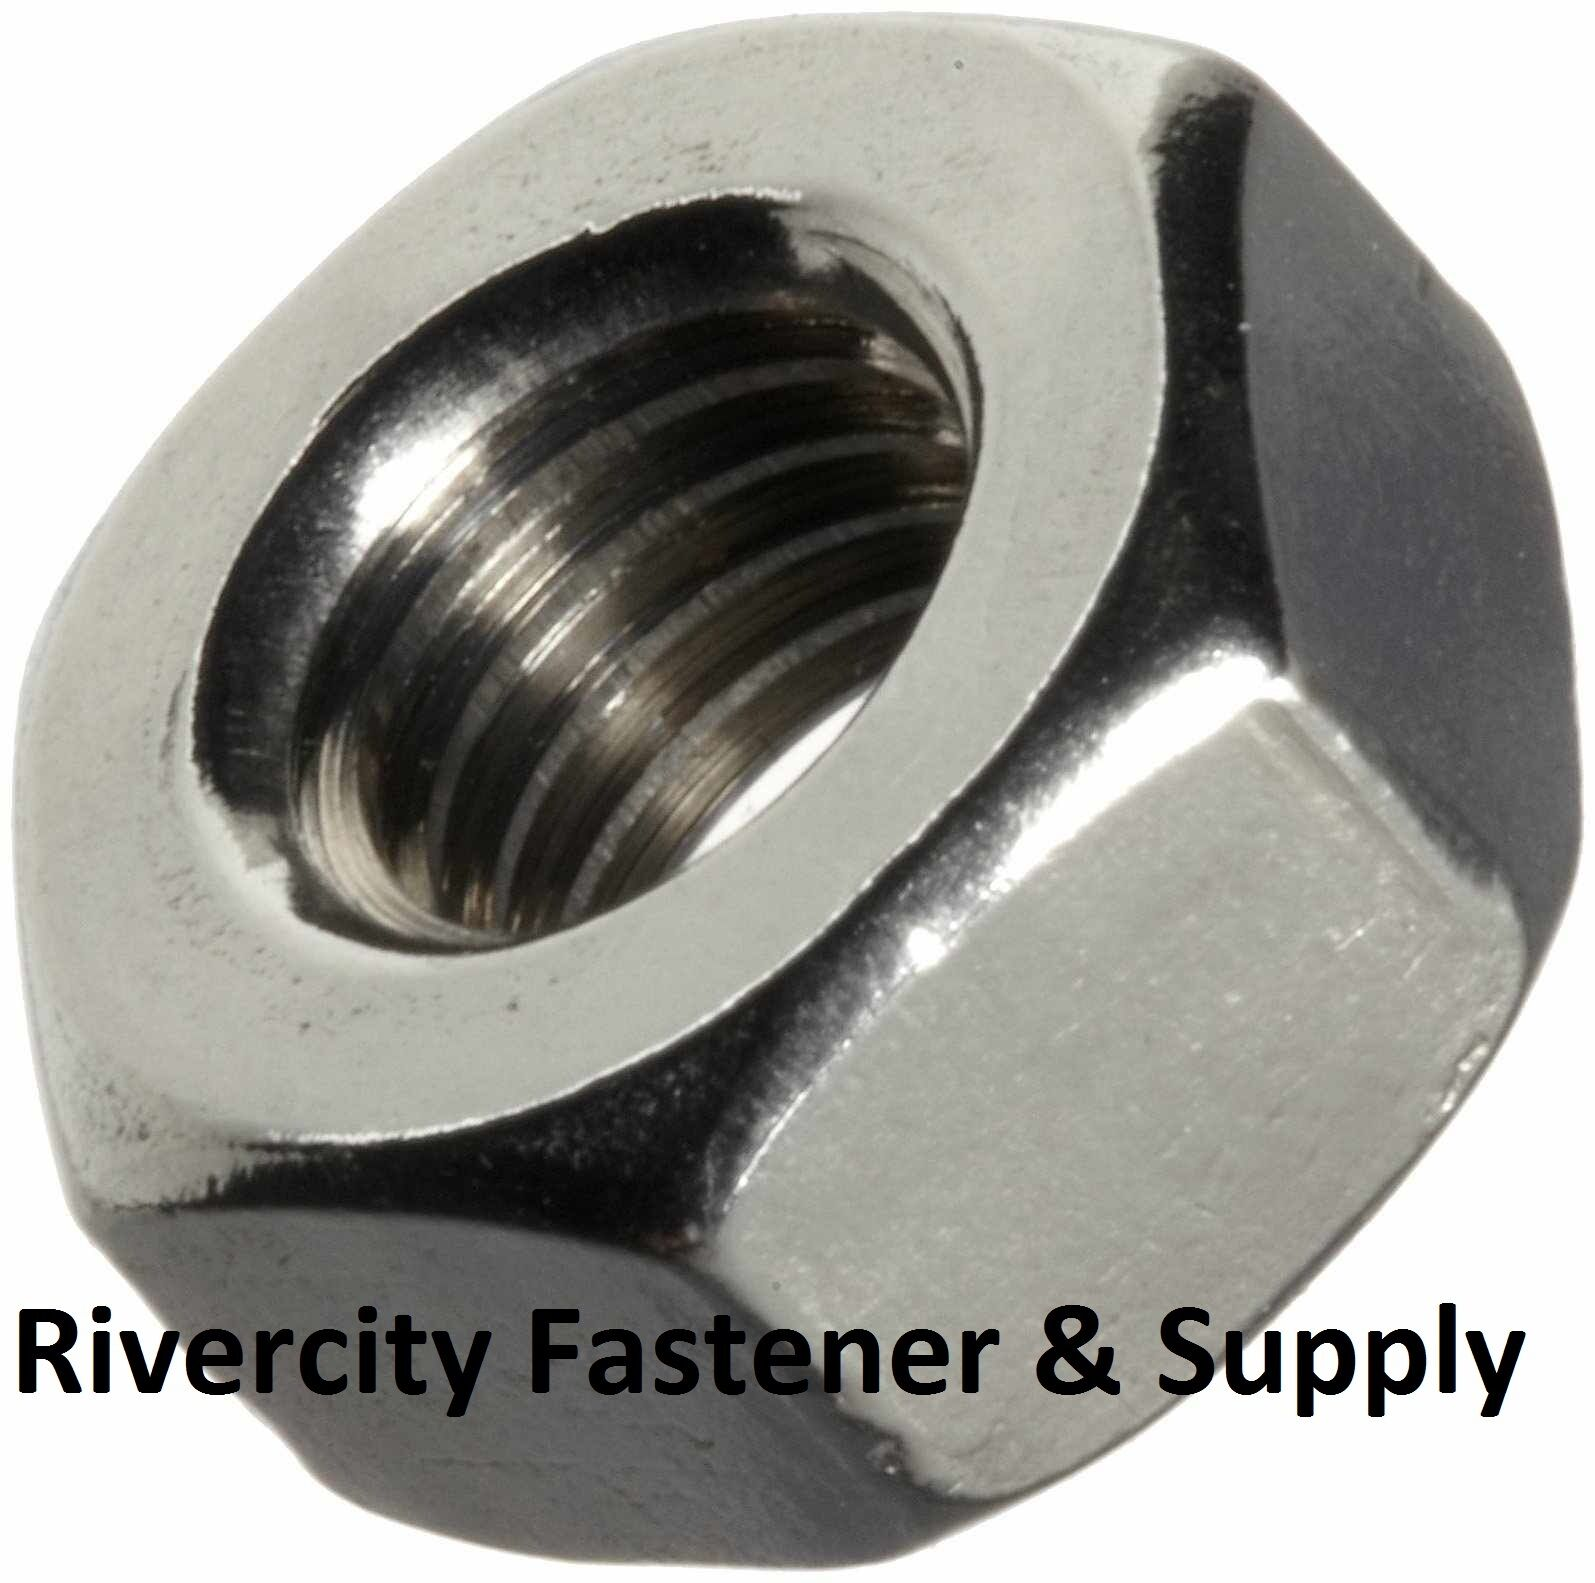 10 M10-1.5 Metric Coarse Thread Hex Nut A4 Stainless Steel 10mm With 17mm Hex